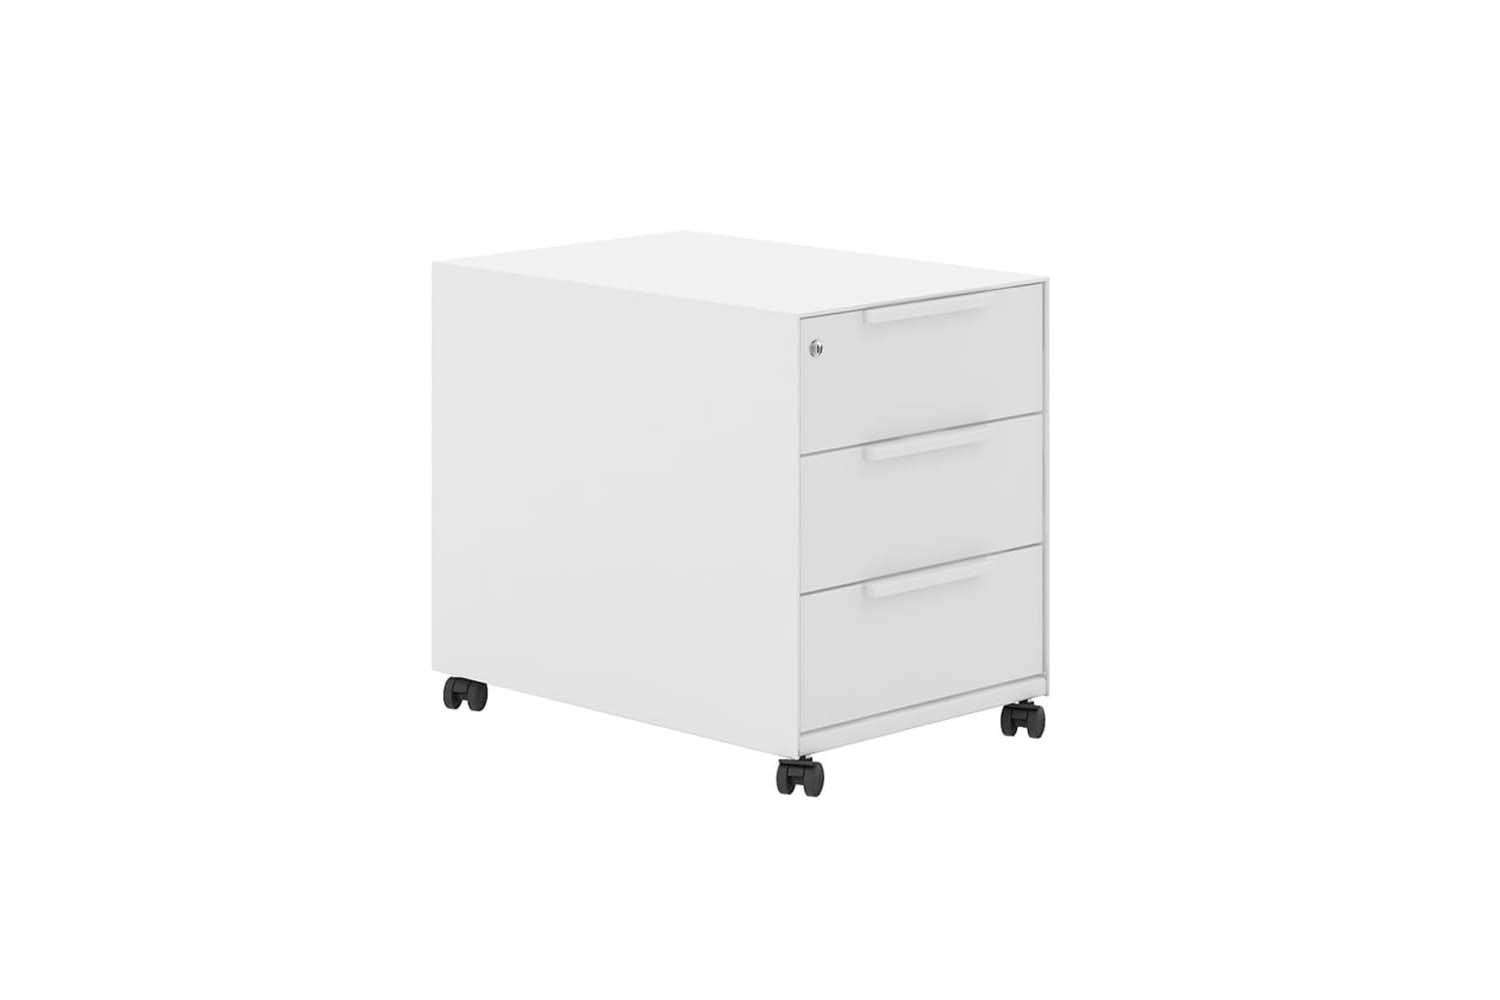 10 Easy Pieces Modern Metal File Cabinets On Wheels The Organized Home